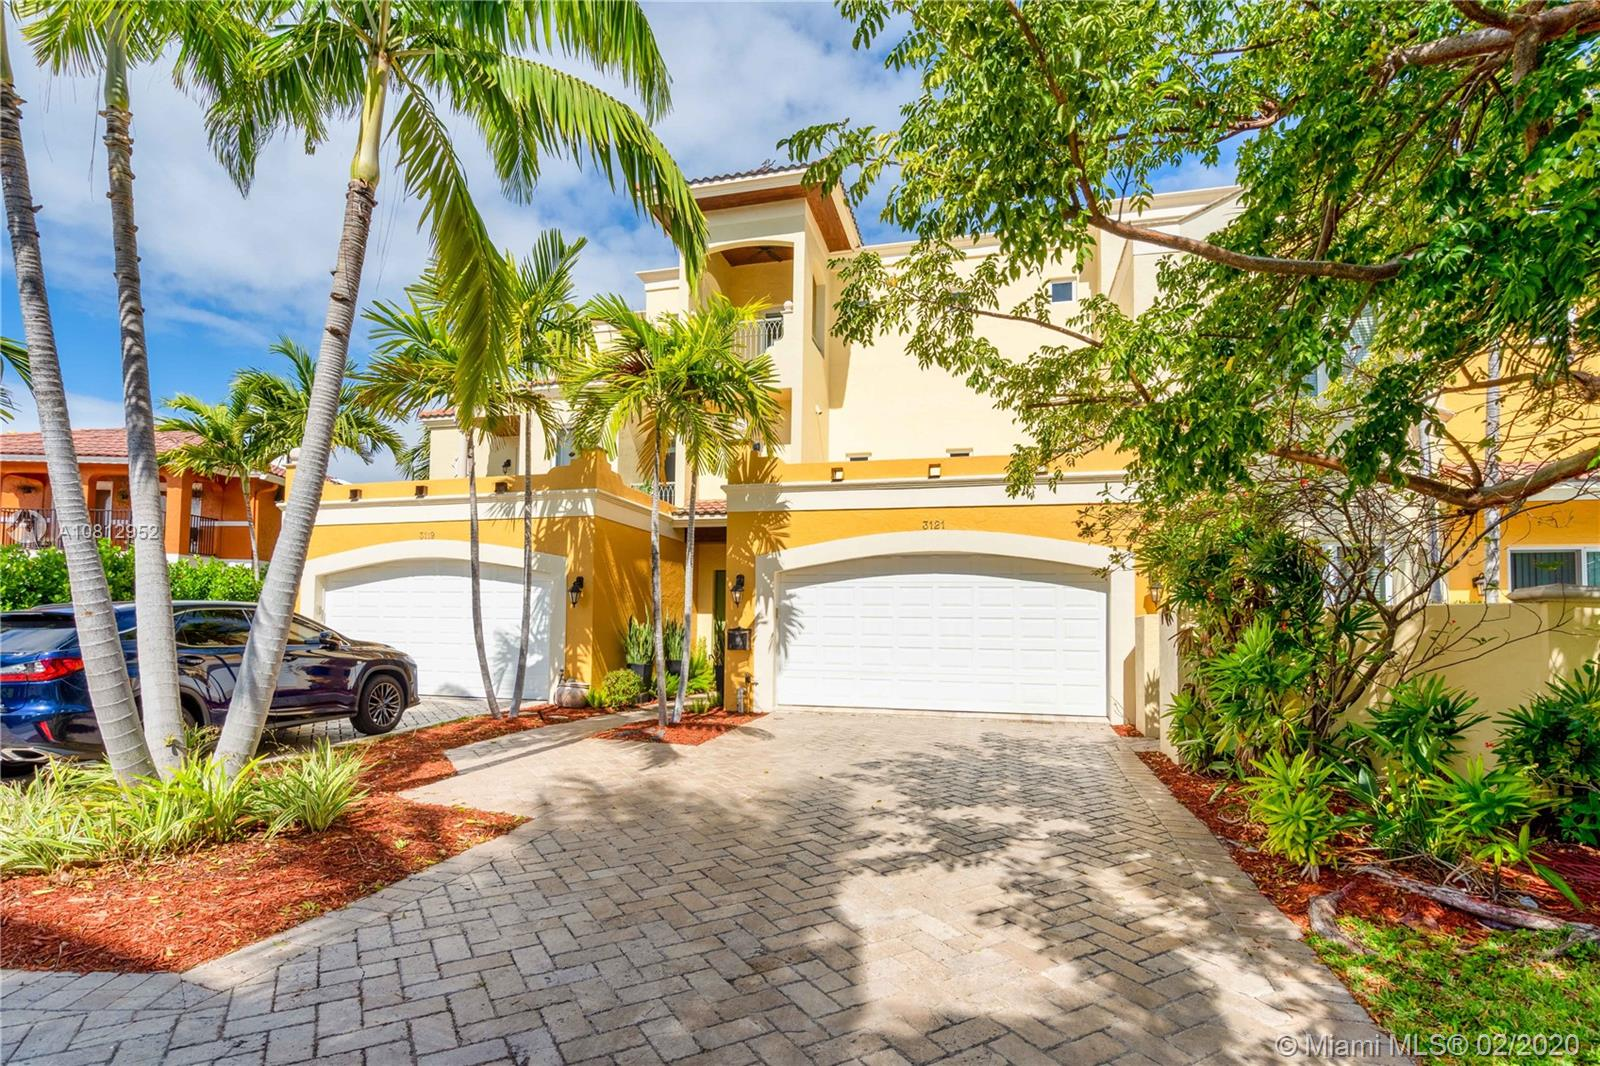 One of a kind townhome in the prestigious Dolphin Isles in east Fort Lauderdale. This 3 bedroom, 4 bathroom townhouse has it all! Top of the line tile and hardwood flooring throughout, custom made Italian cabinetry, private elevator, safe room, and much more. This townhouse sits right on the Intracoastal and has a dock for your boat. It has a gas fireplace and range, 3 terraces, 2 master suites, a 2 car garage that is climate controlled with a Tesla charger, and the list goes on. Sitting right across from the beach, it does not get better than this! PROPERTY FOR RENT AND SALE.  Tax record sq ft incorrect. Actual Sq ft living area 2850, front entryway was blown out and they added another laundry room on the second floor.